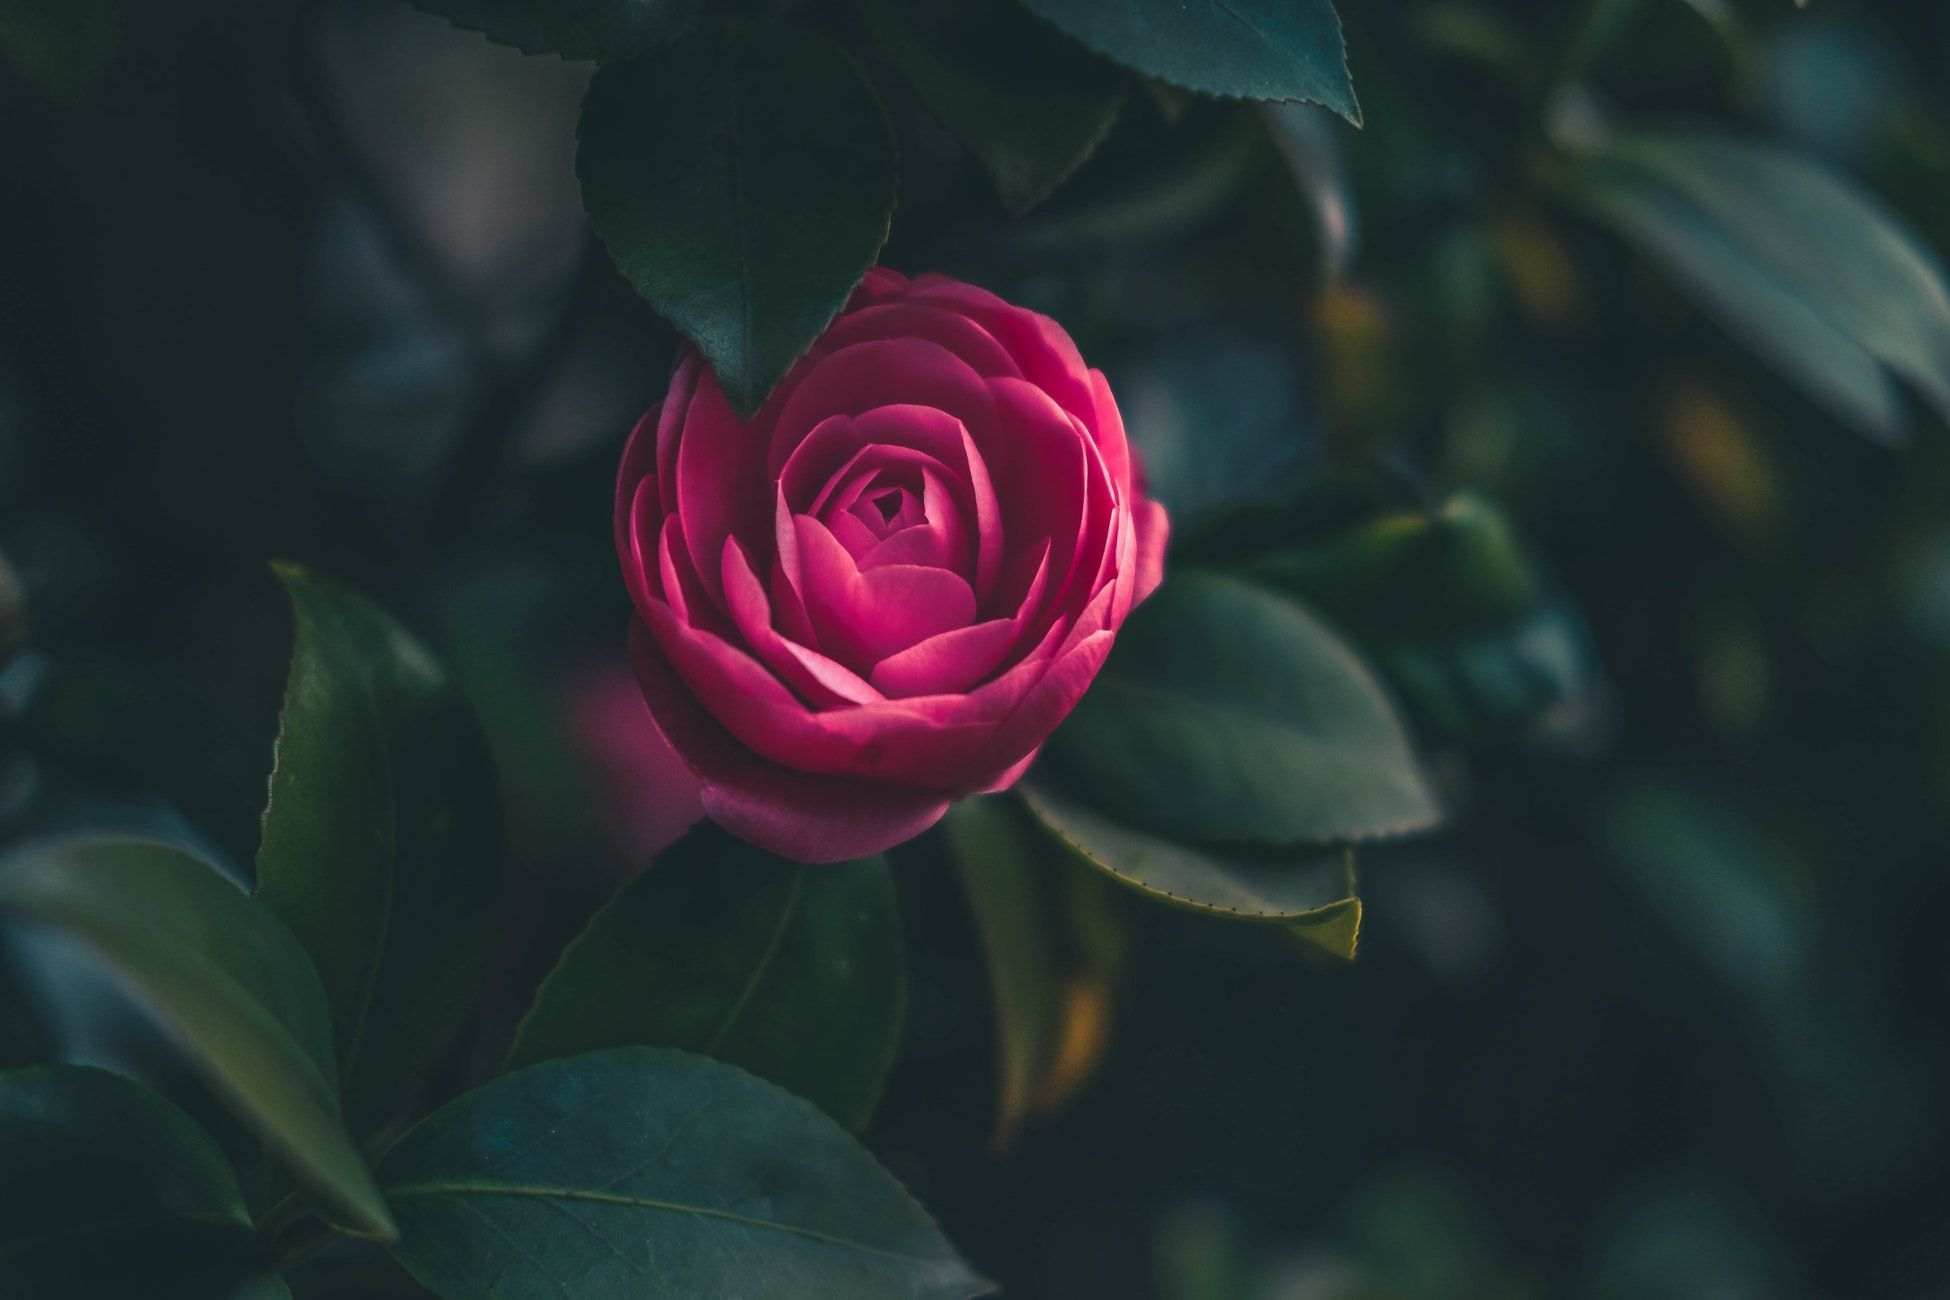 Our Inspiration The Icon Of British Bloom Is Inspired By The Camellia Flower The History Of This Flower Goes Back To Bloom Rose Types Of Red Wine